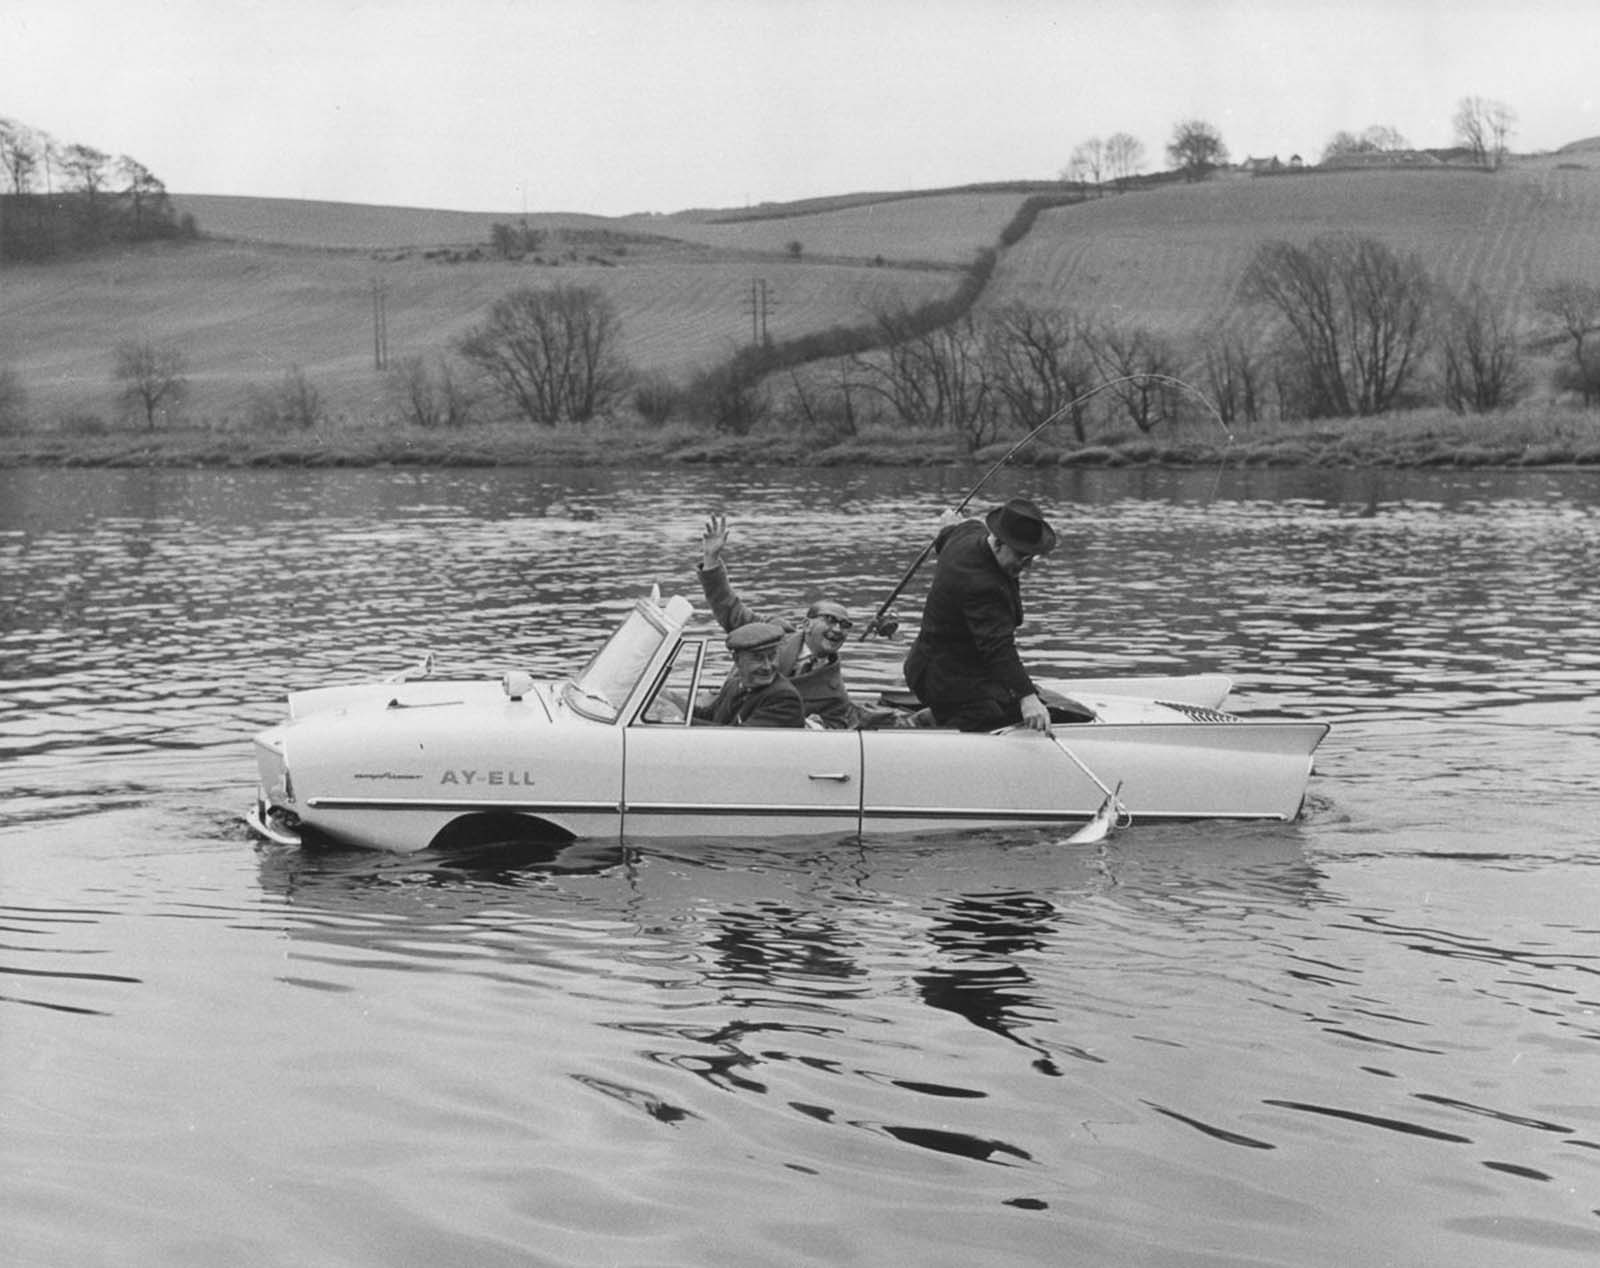 The Amphicar is used as a fishing boat by its owner at the start of the salmon fishing season on the River Tay, Scotland. 1964.